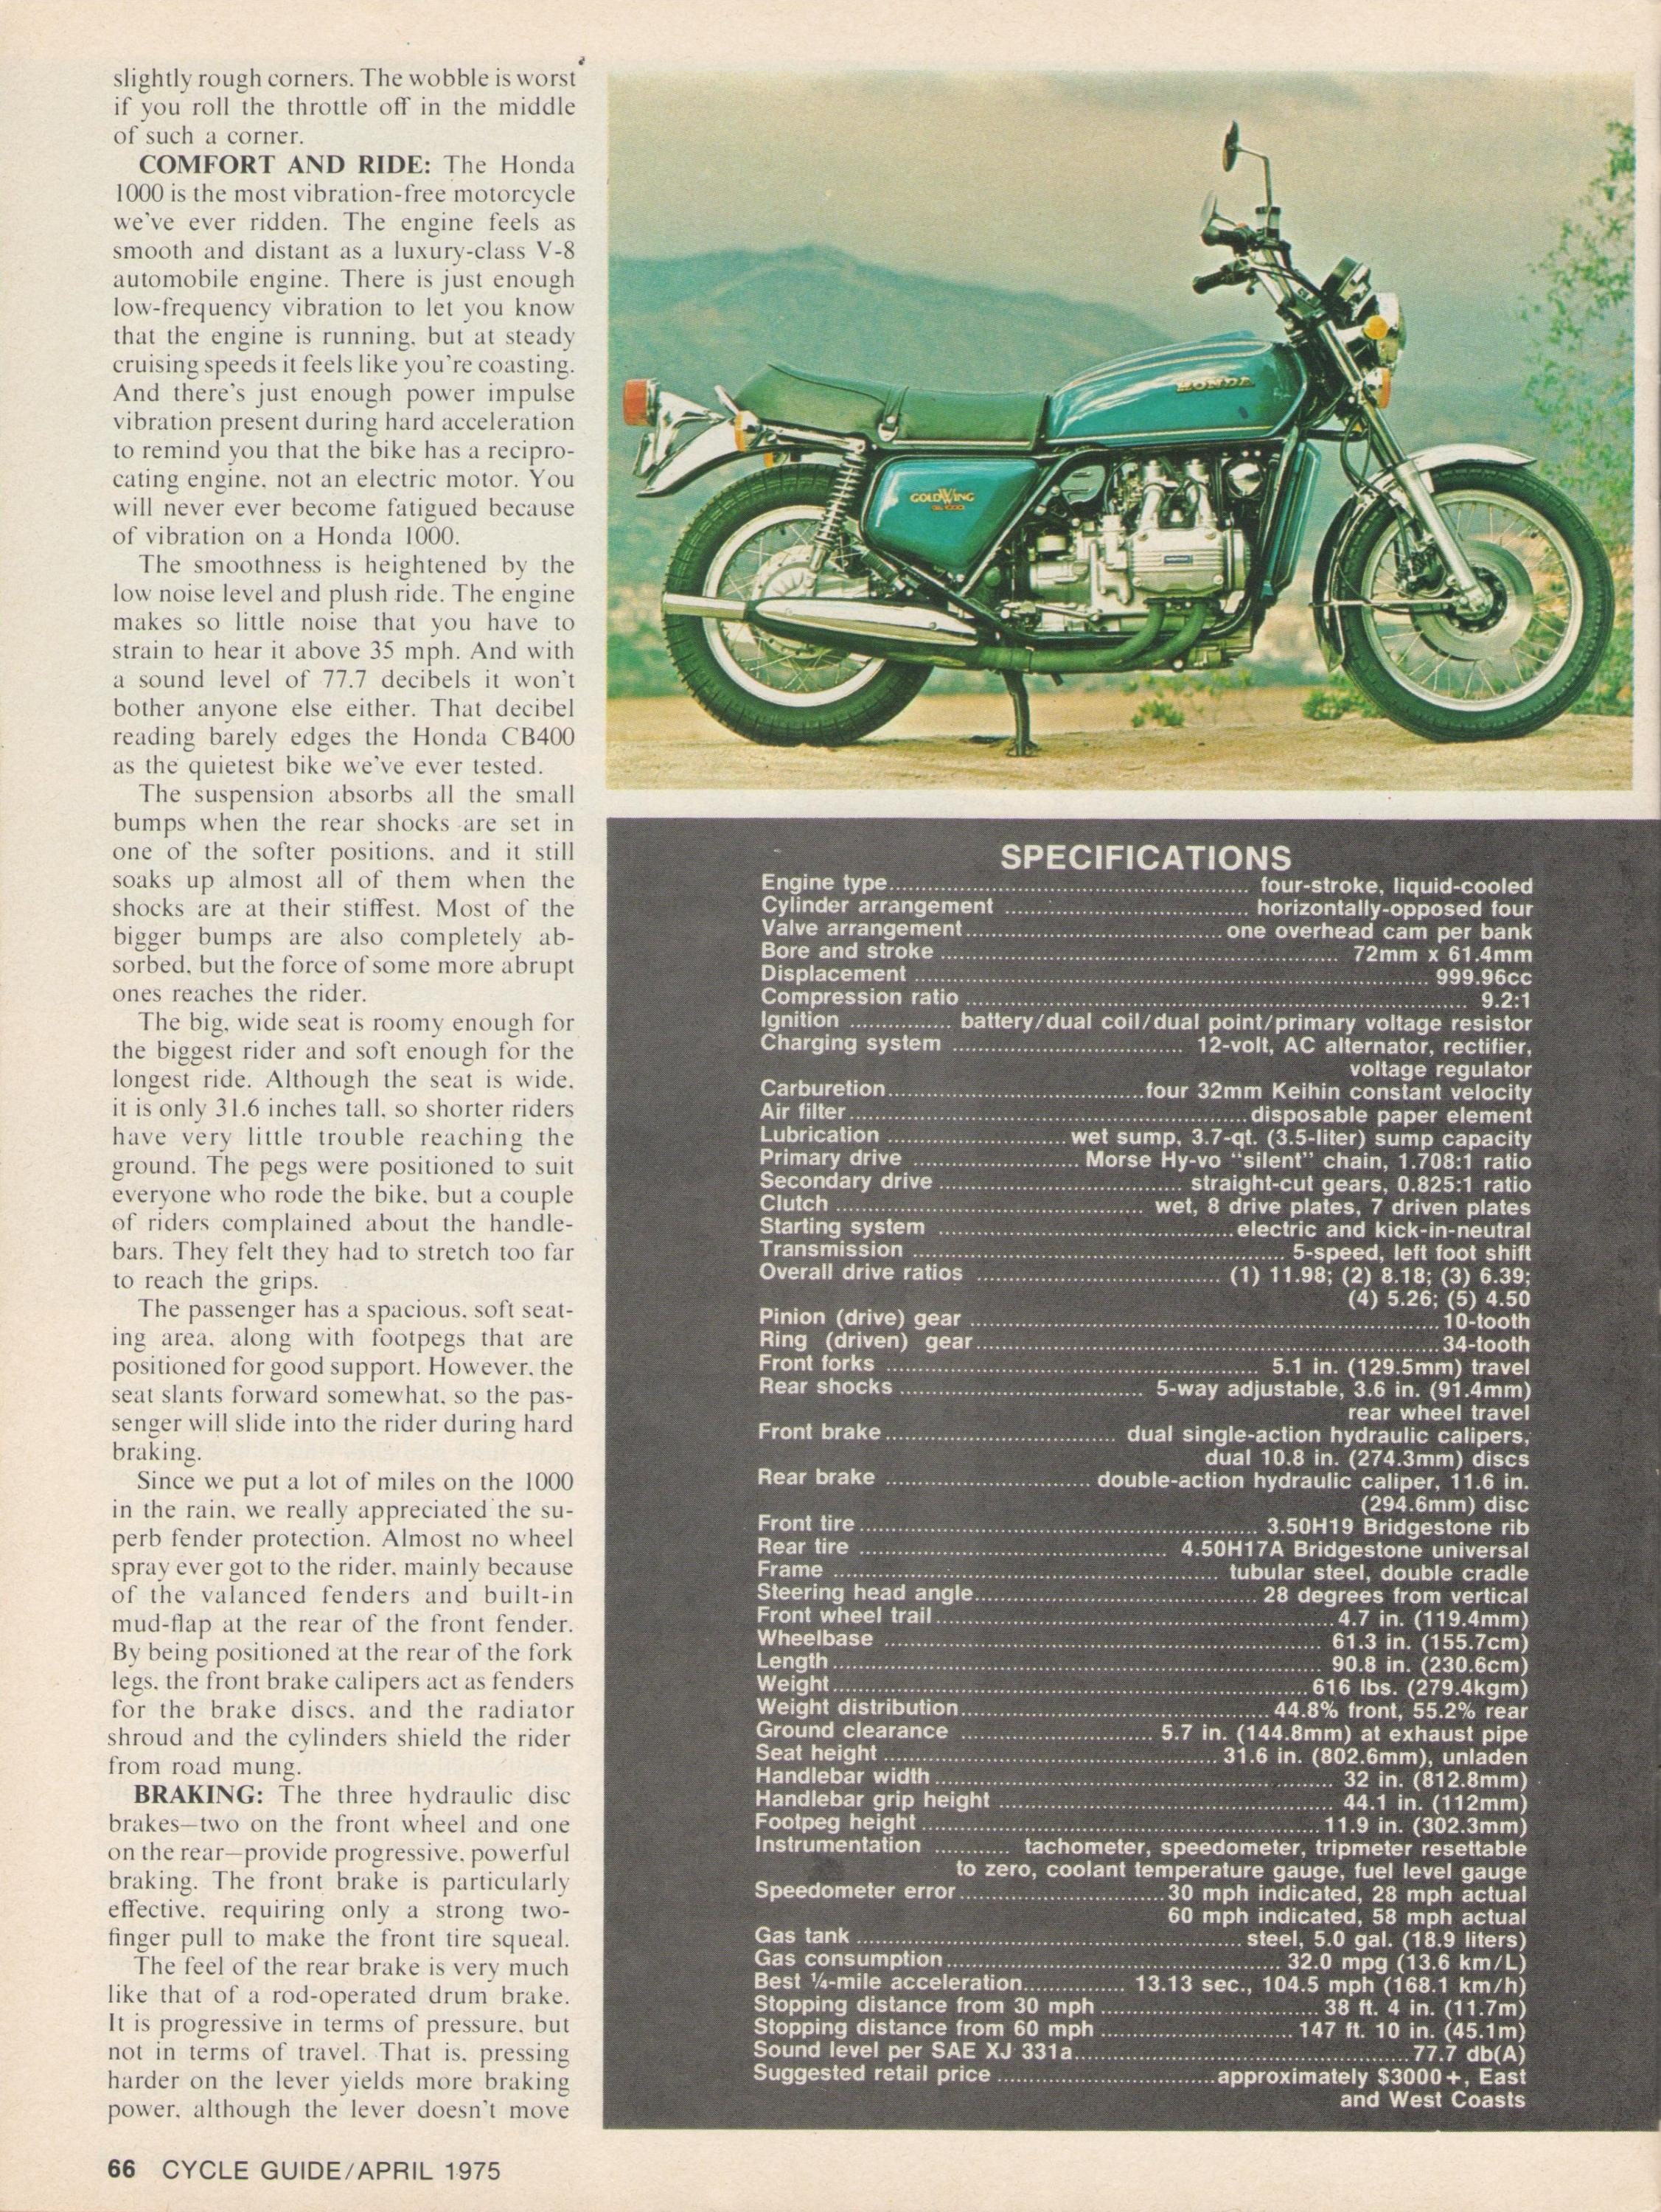 1975 GL-1000 test report Cycle Guide Magazine April 1975-1975-gl-1000-test-report-p.12.jpg